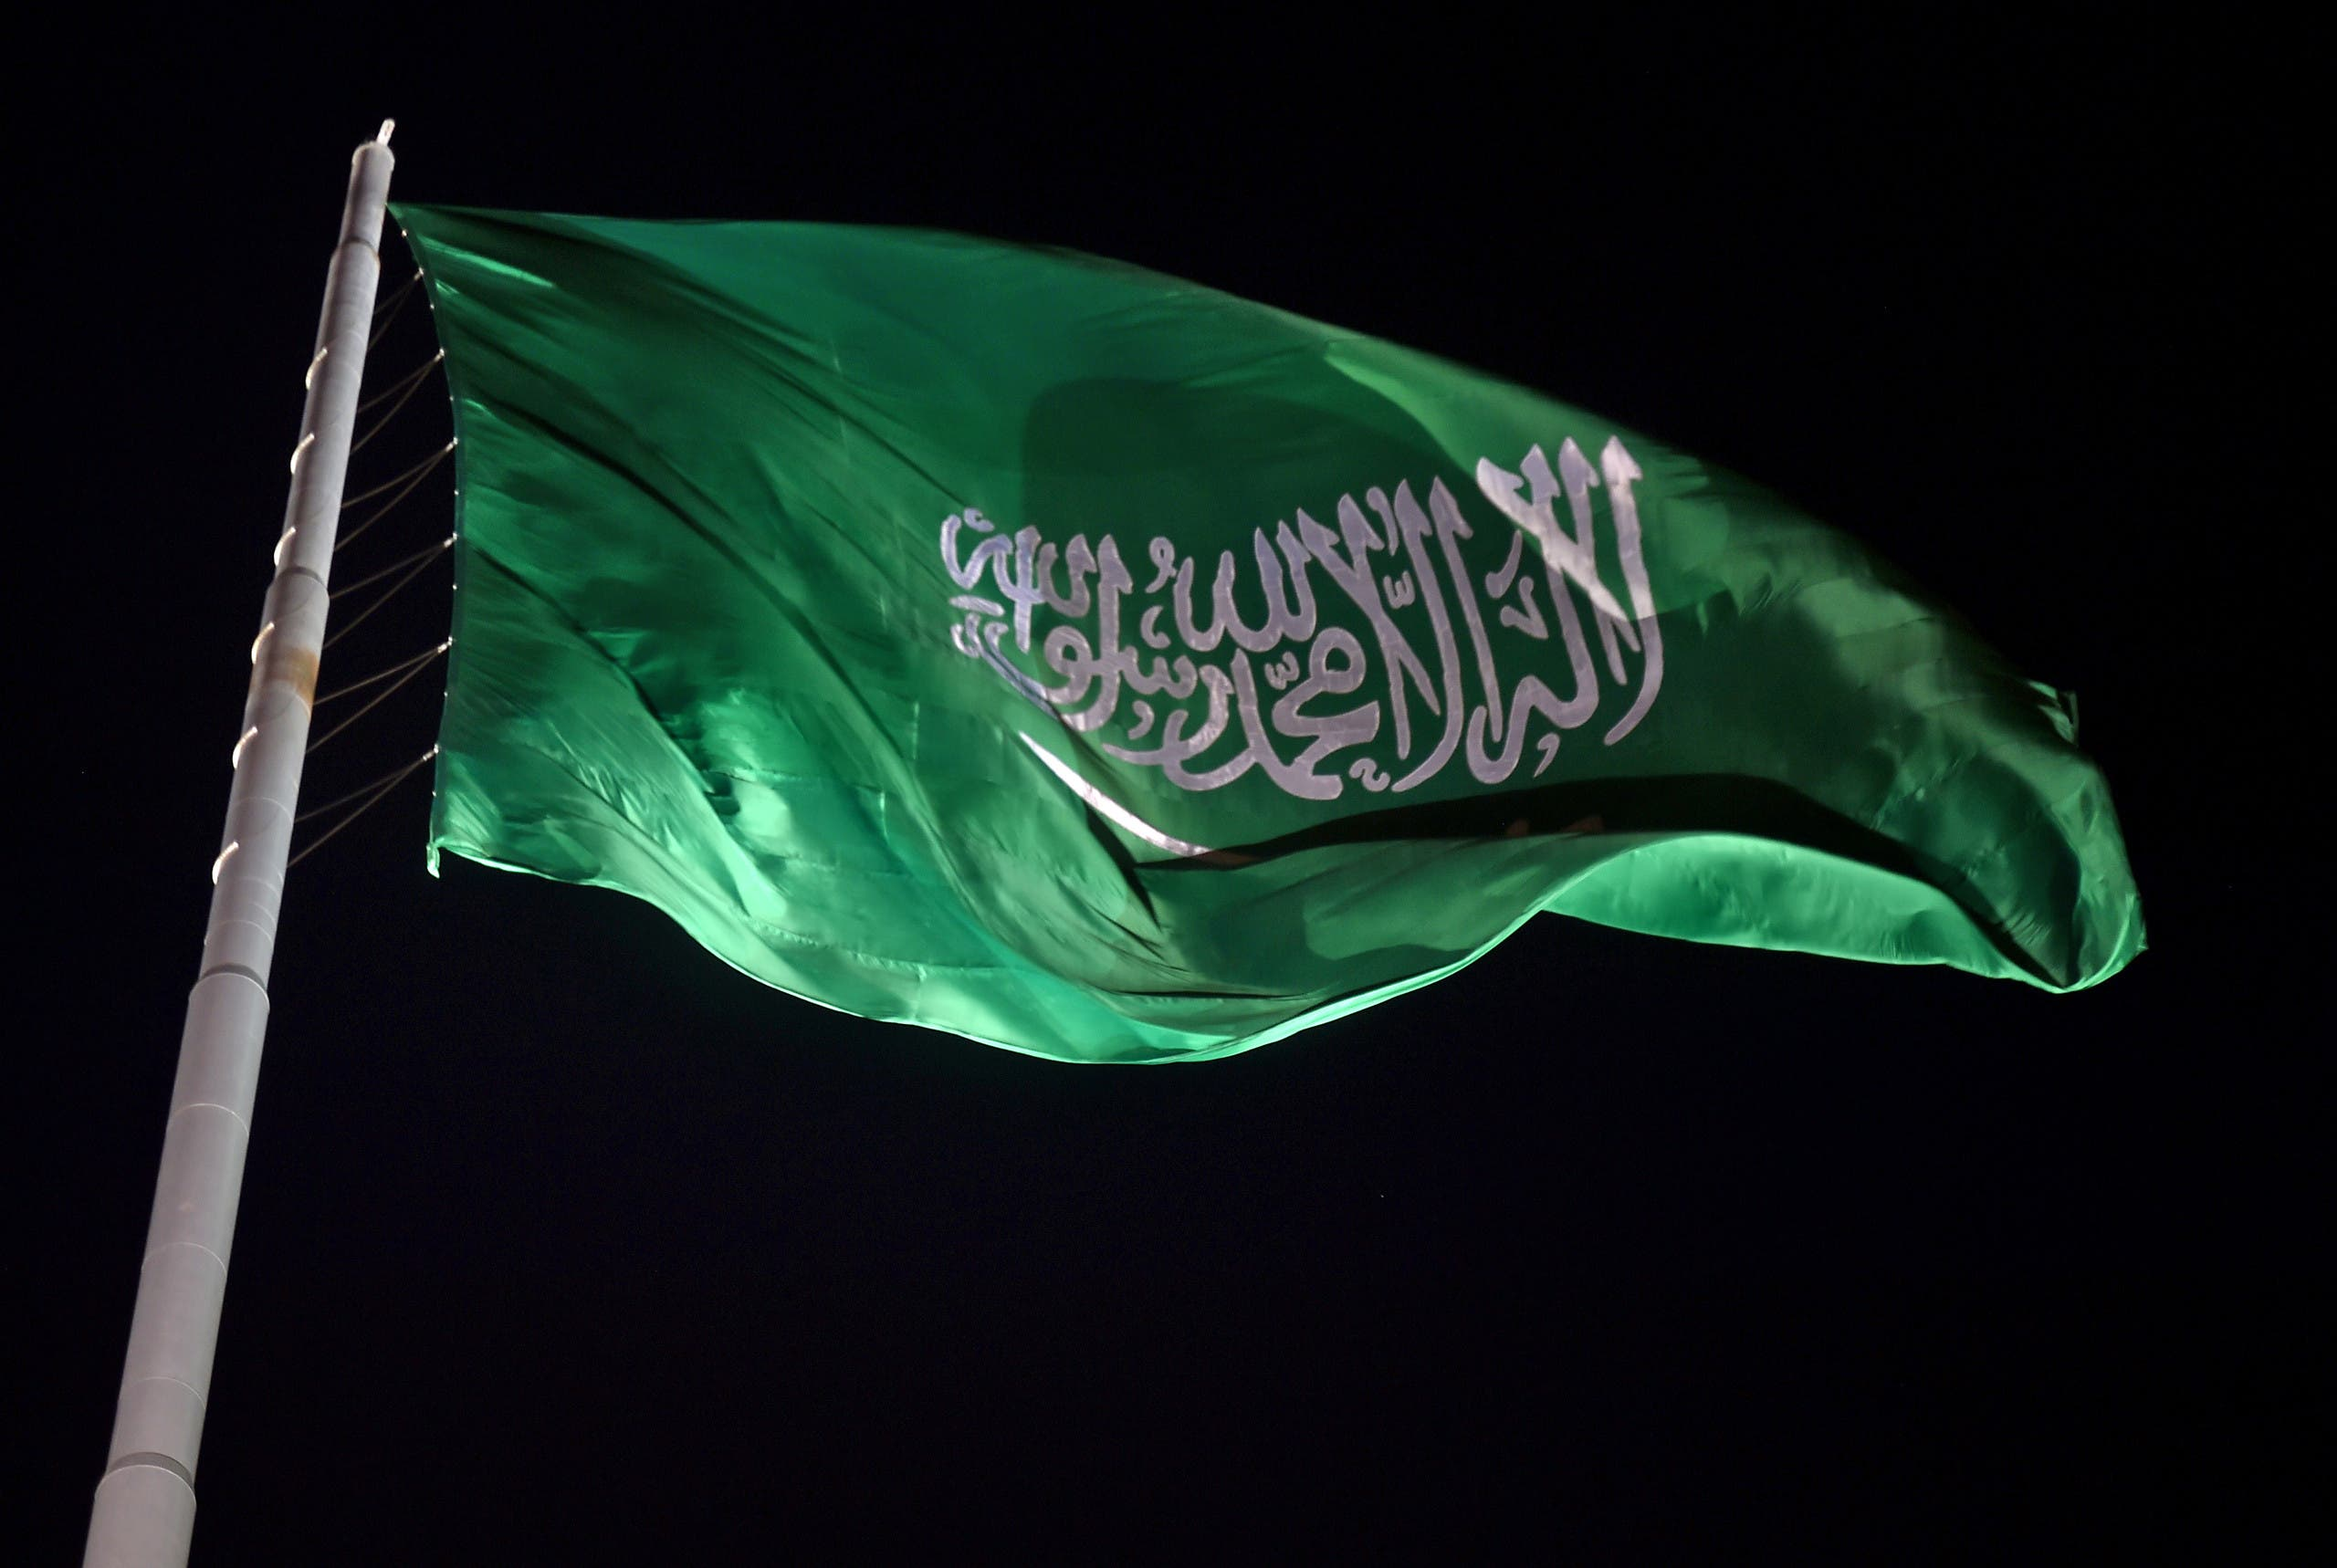 The Saudi national flag flutters at the historical site of al-Tarif in Diriyah district, on the outskirts of Saudi capital Riyadh, on November 20, 2020.